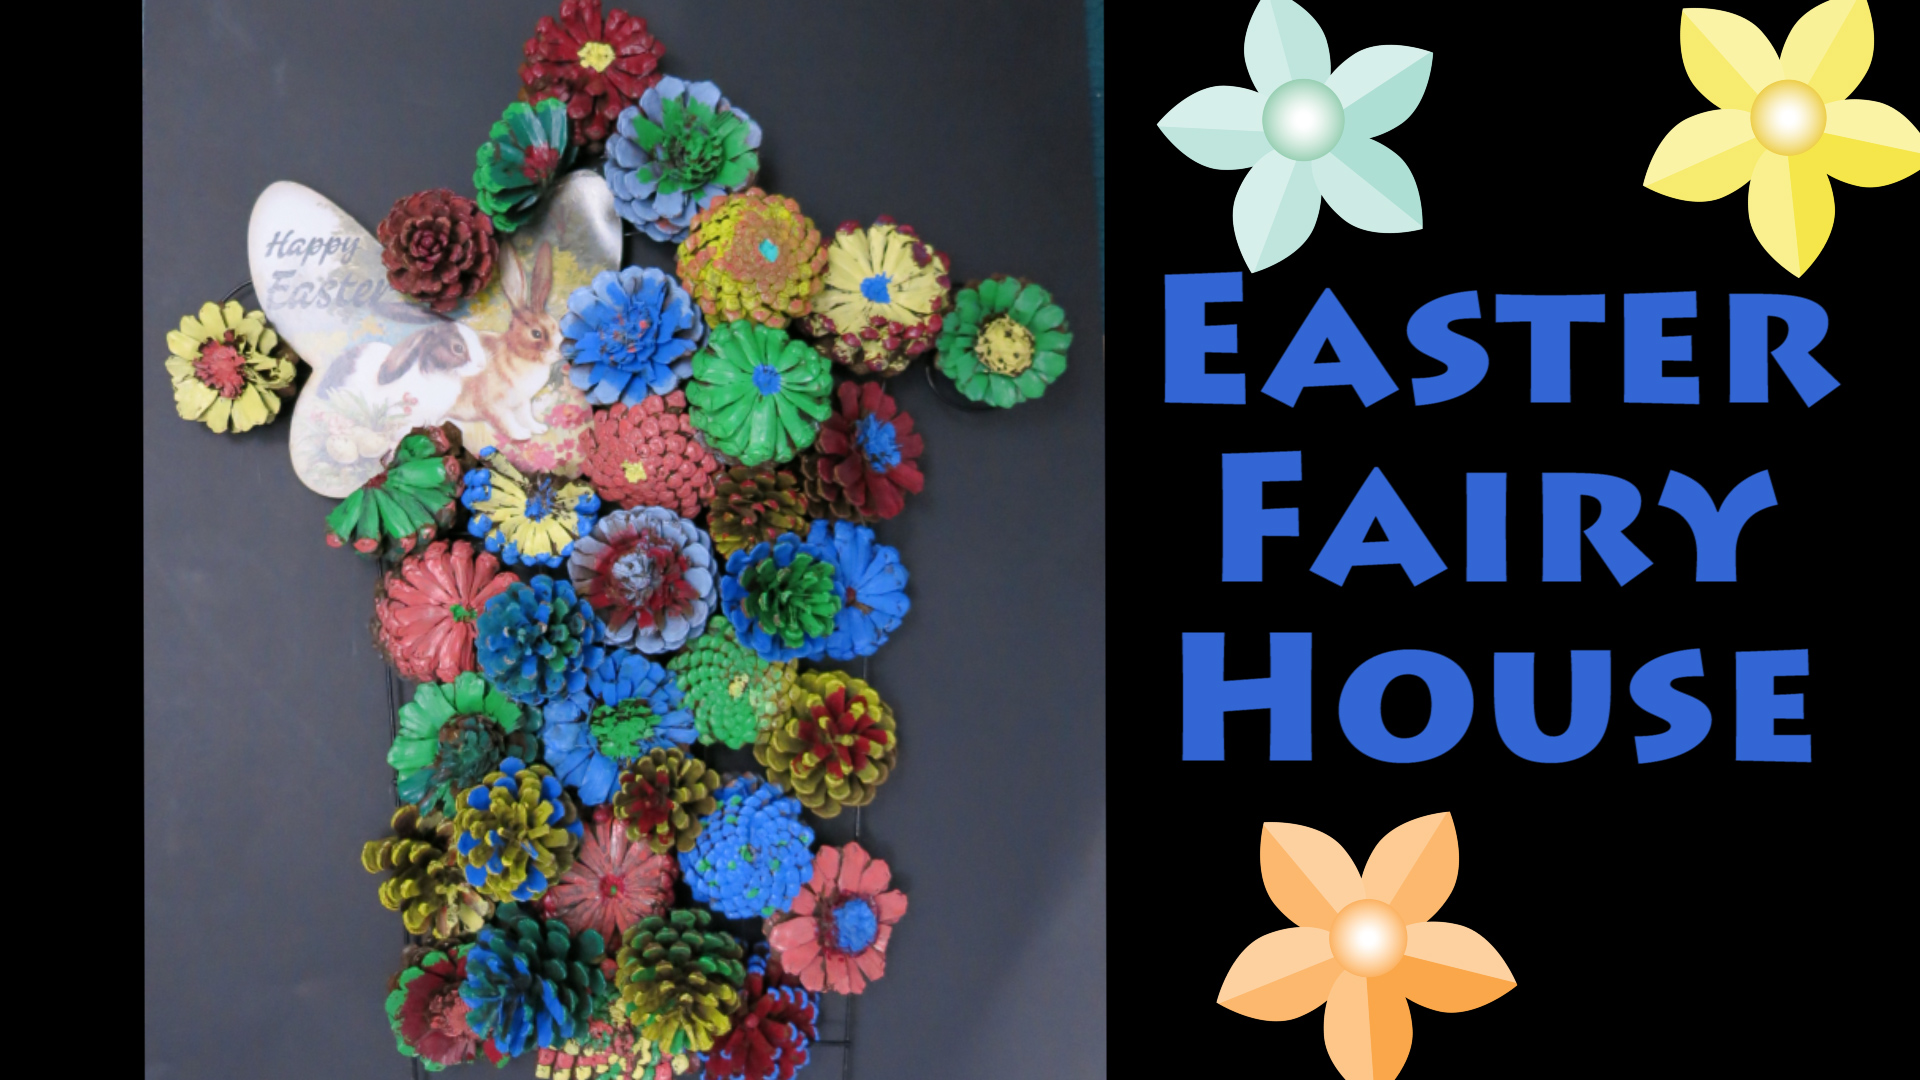 Easter Fairy House DIY made with Painted Pine Cone Flowers and Wire Trellis Frame.jpg